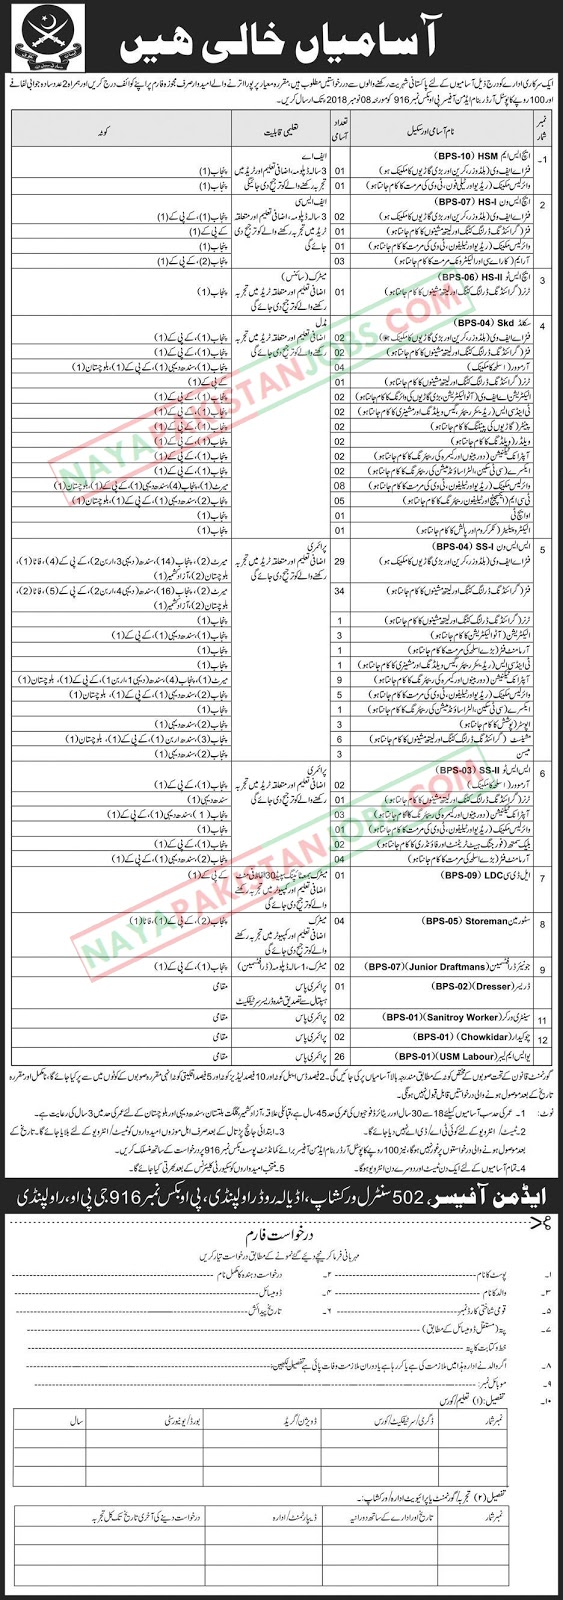 Latest Vacancies Announced in Pakistan Army at 502 Central Workshop Rawalpindi 21 October 2018 - Naya Pakistan